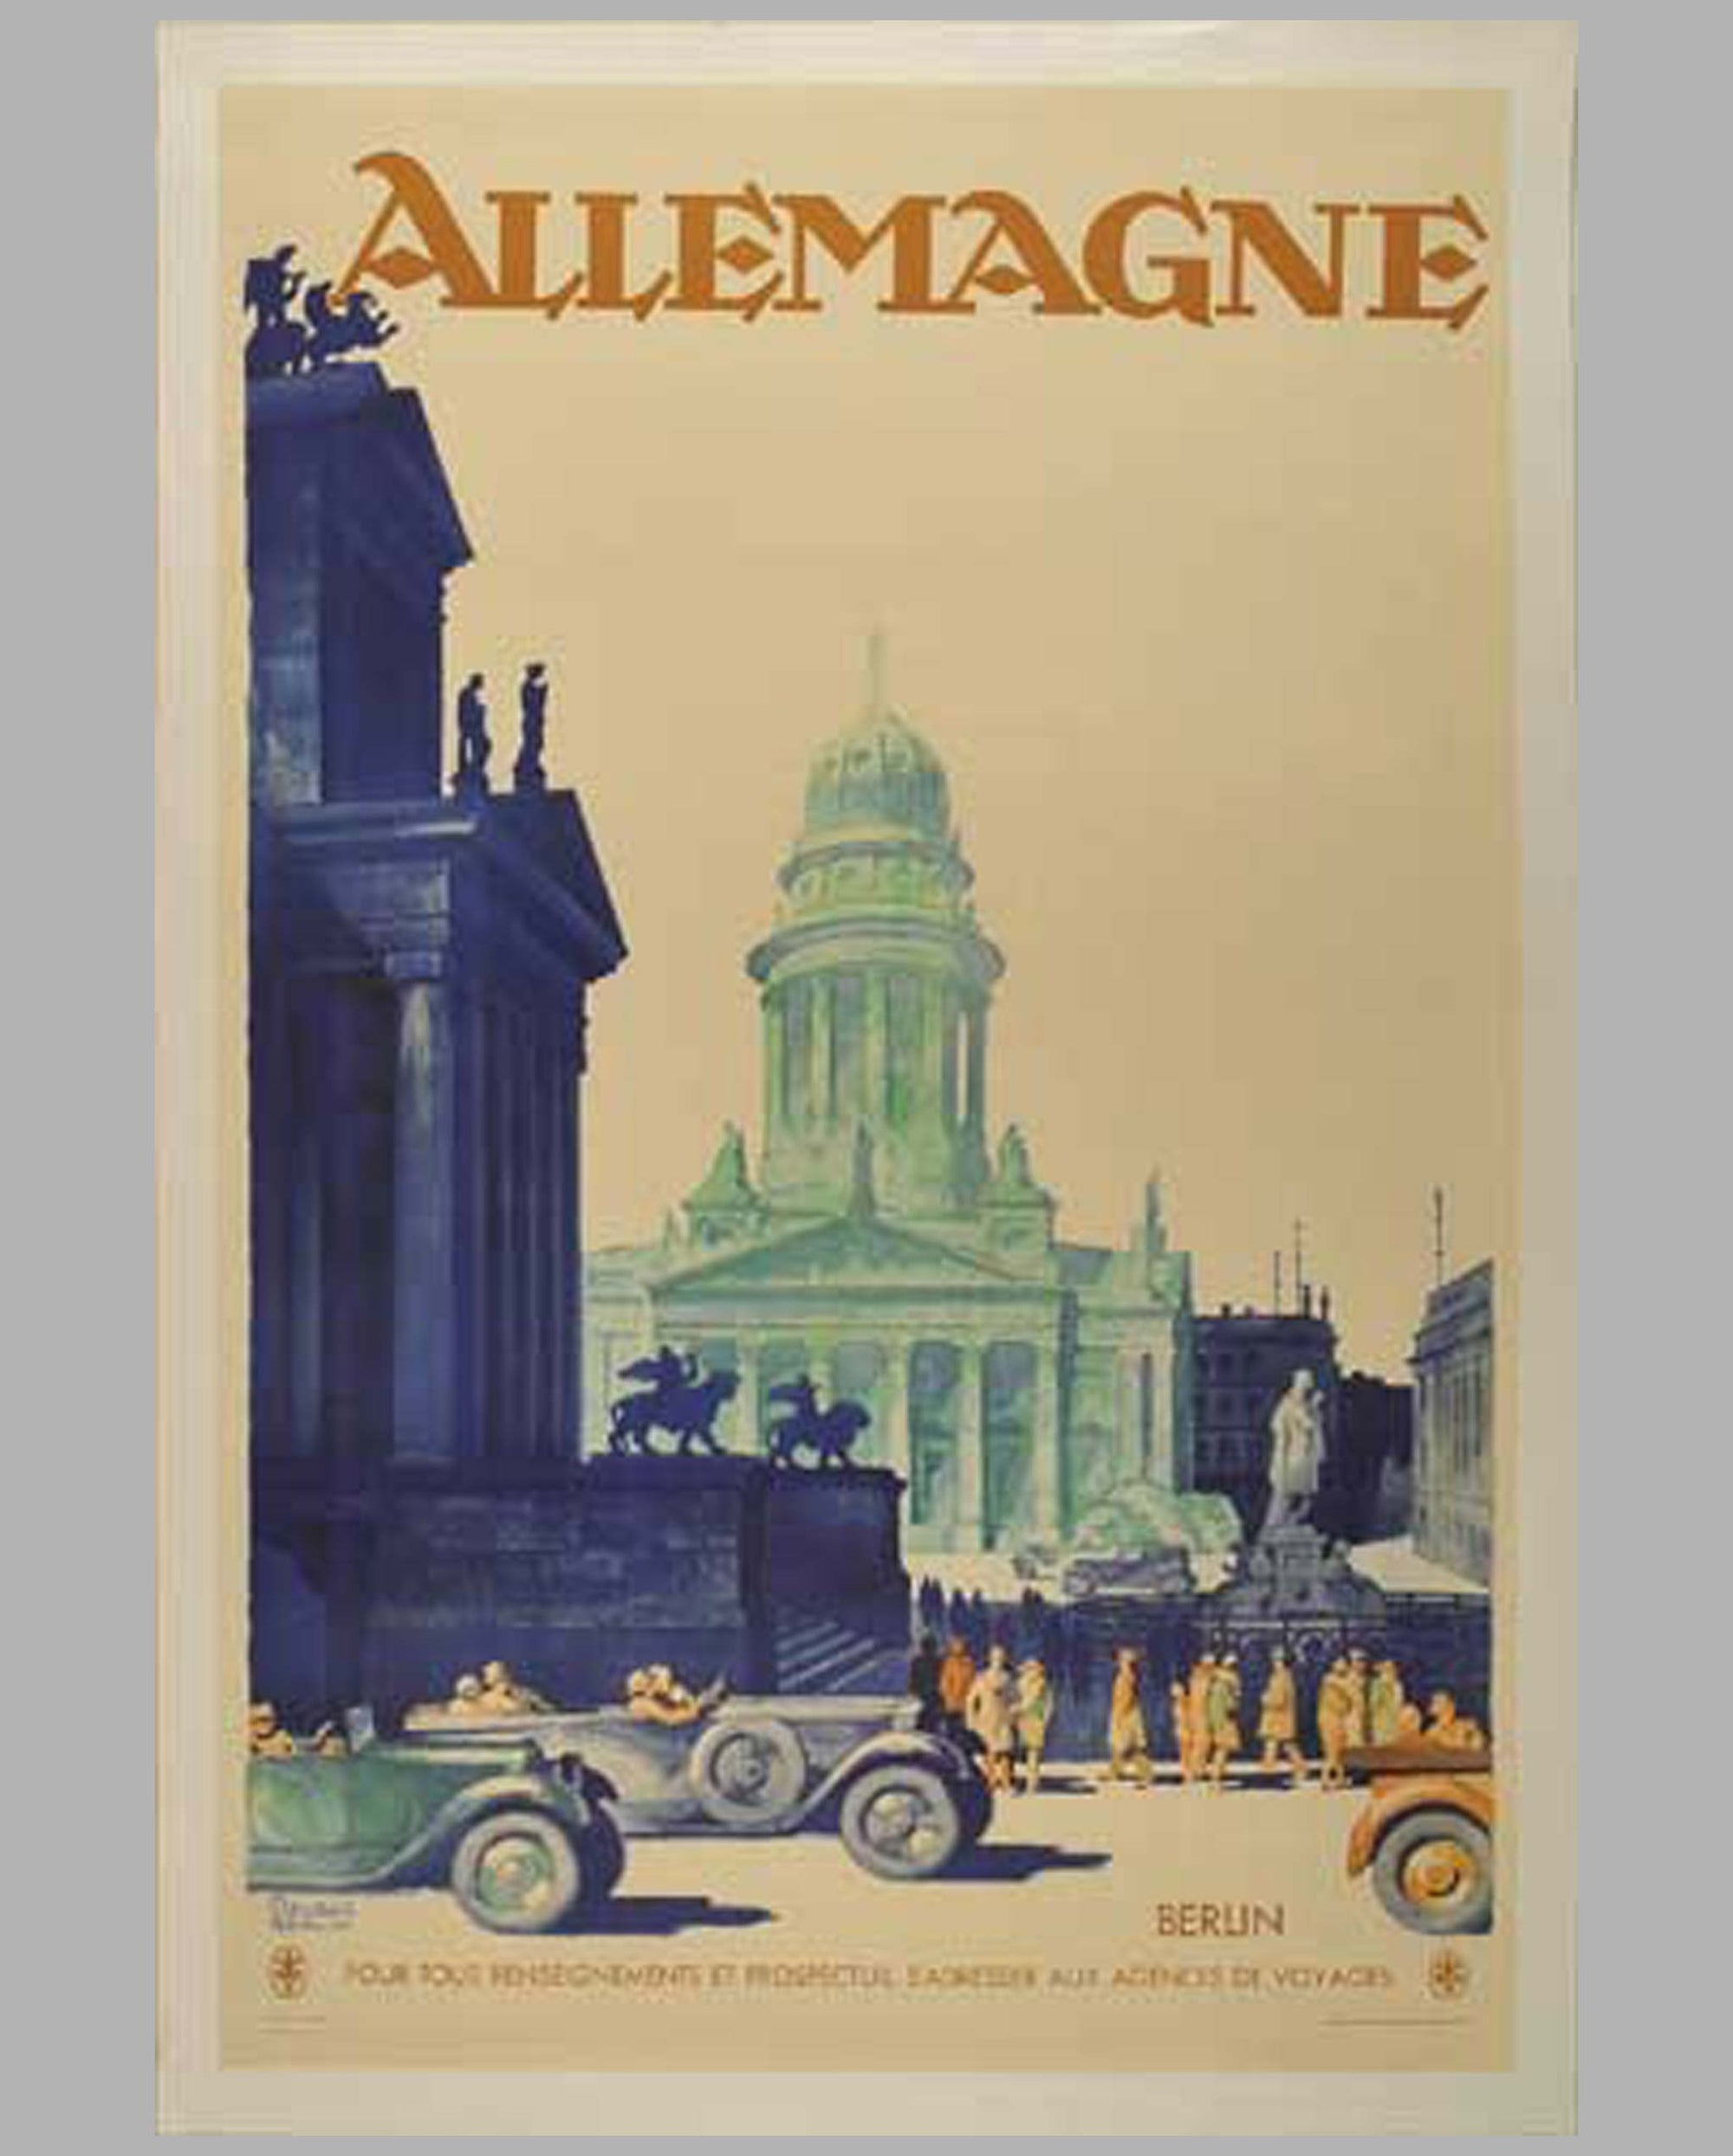 1930's Allemagne (Germany) original poster by Friedel Dzubas